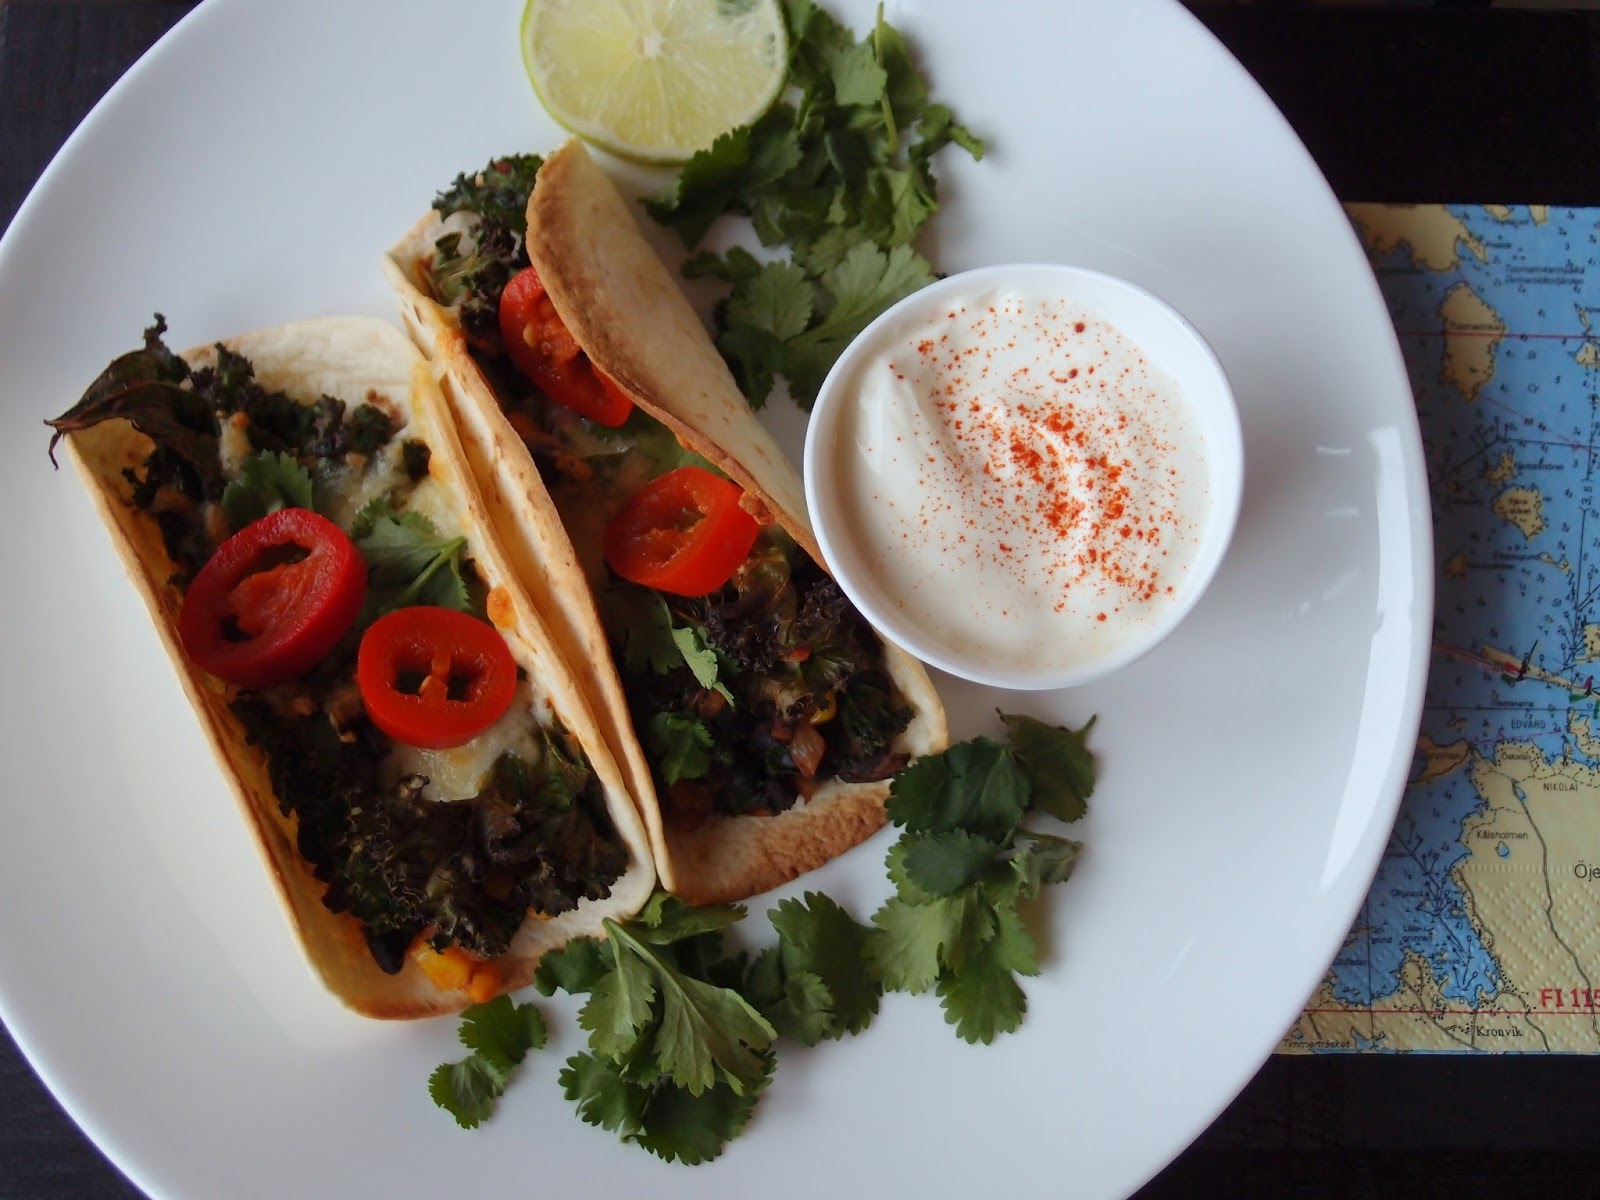 The VegHog: Black bean and kale tacos